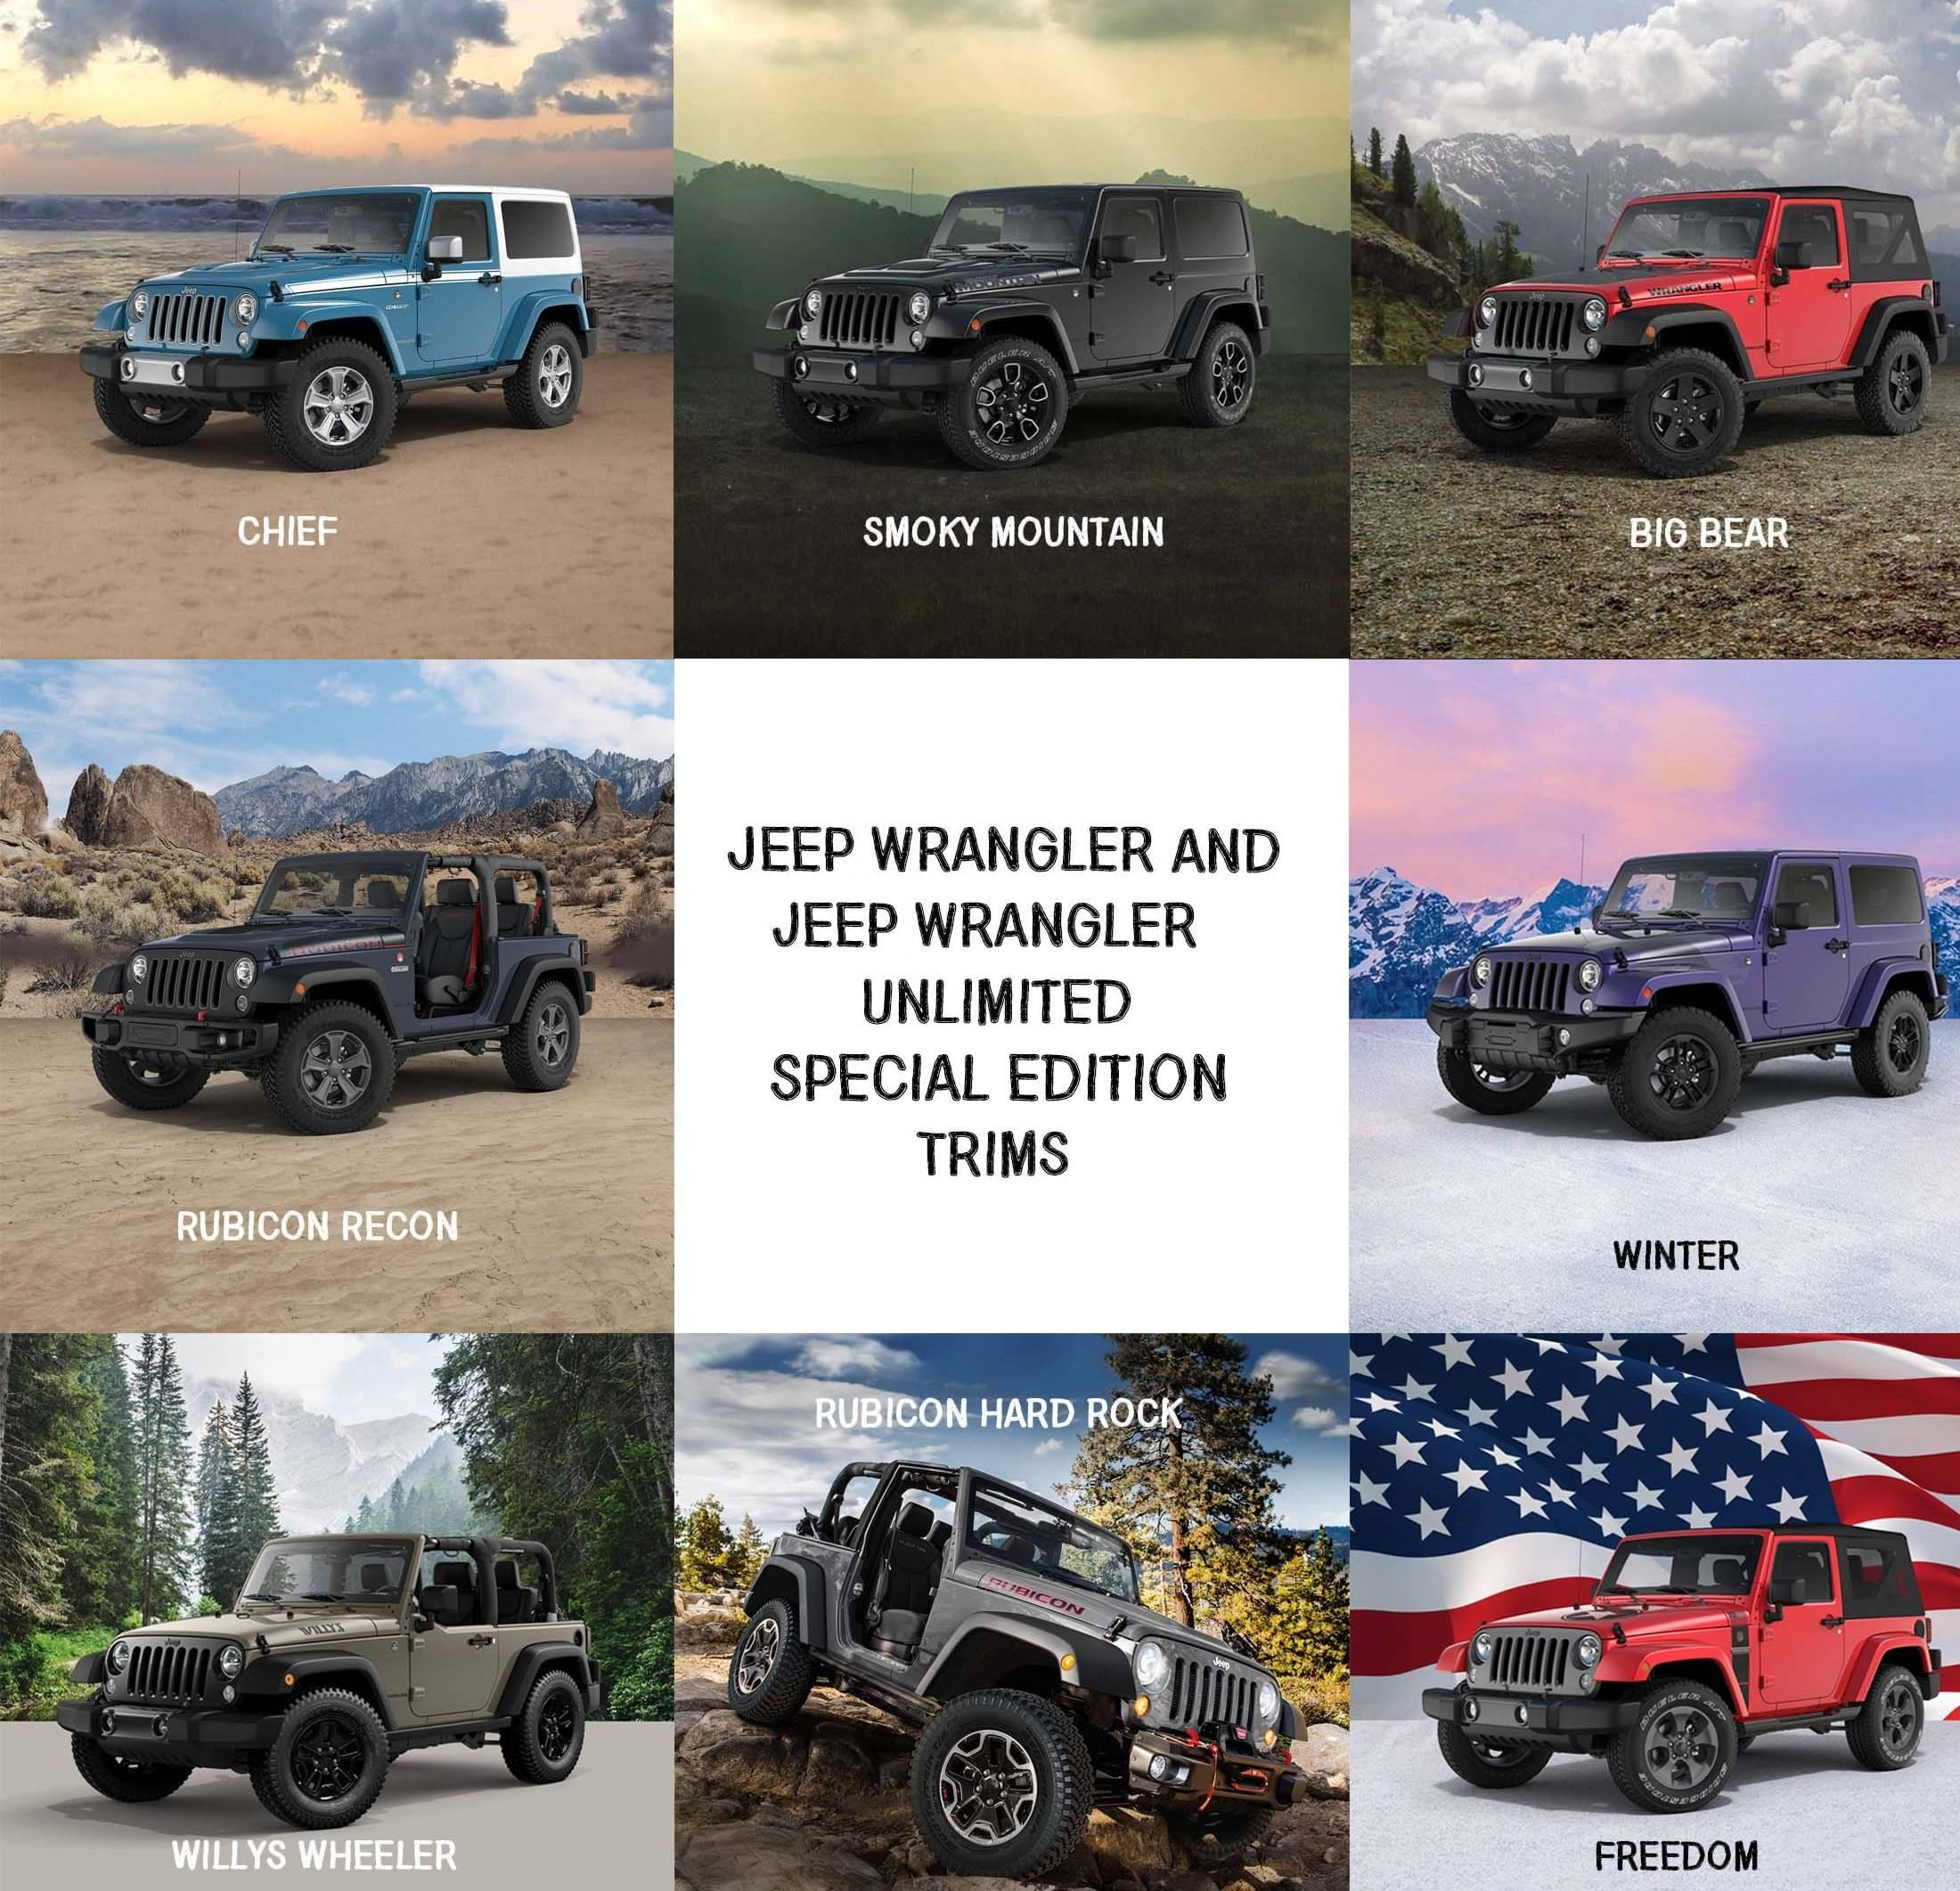 Limited Edition 2017 Jeep Wrangler And Wrangler Unlimited Trims